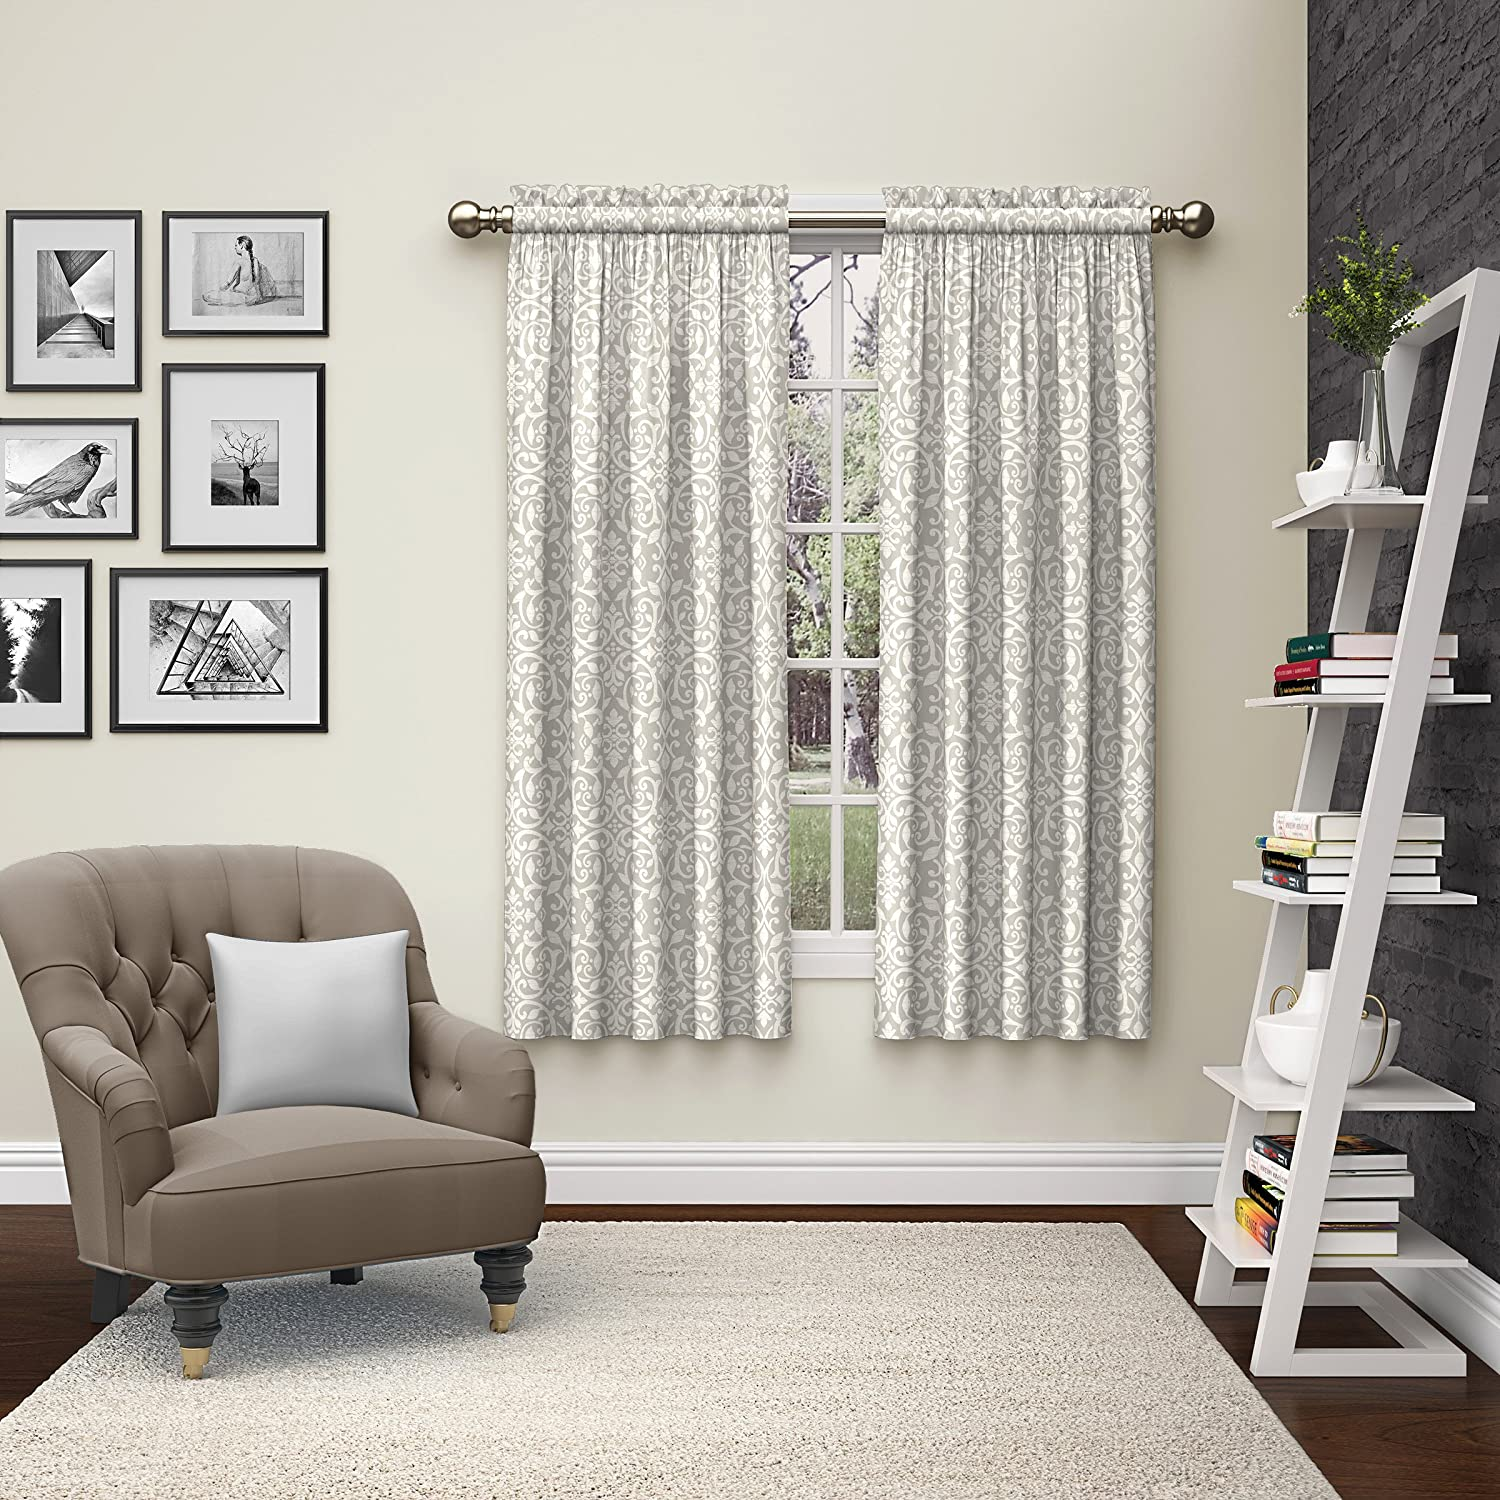 Pairs to Go Eclipse 15614056X063MST Pinkney Window Curtains (2 Pack), 56 x 63, Mist 56 x 63 Ellery Homestyles